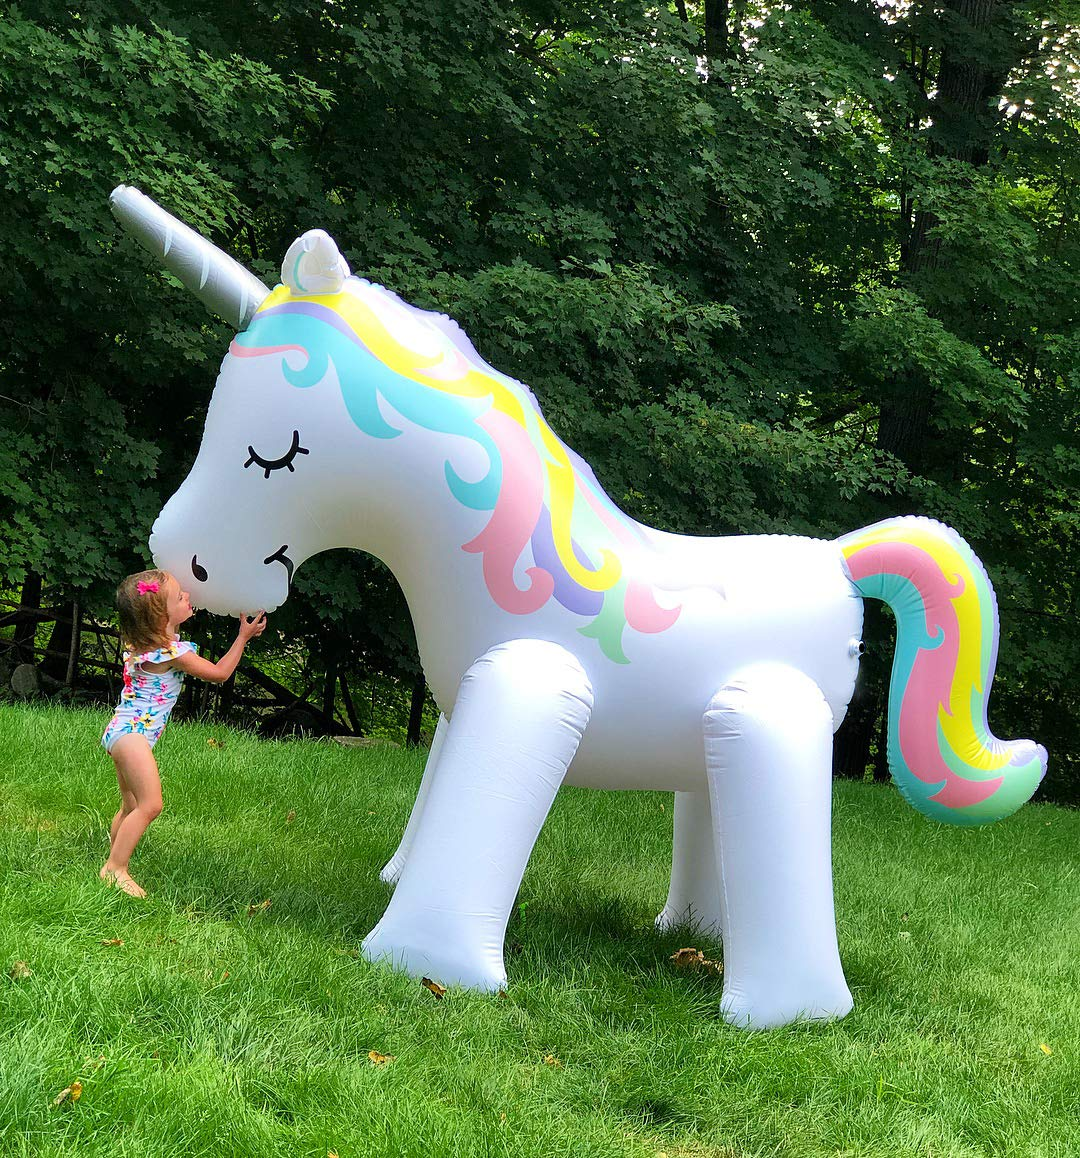 LANGXUN Ginormous Inflatable Unicorn Yard Sprinkler Toy for Kids, Perfect for Unicorn Party Supplies & Outdoor Summer Sprays Water Toys for Toddlers 8